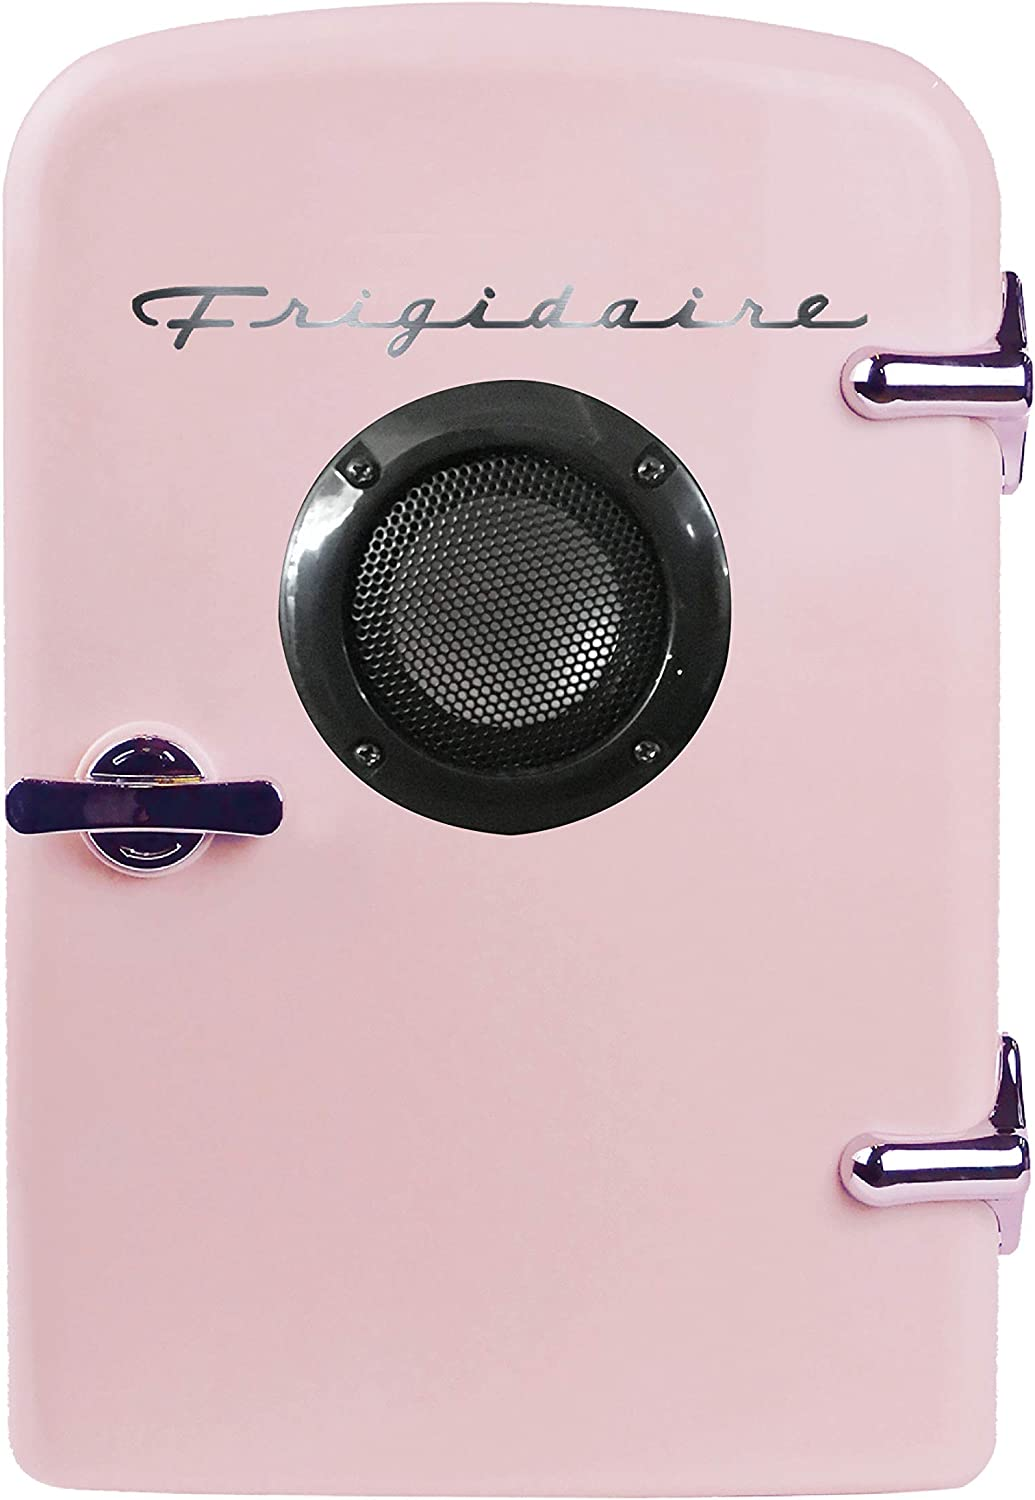 Frigidaire EFMIS151-PINK Mini Fridge